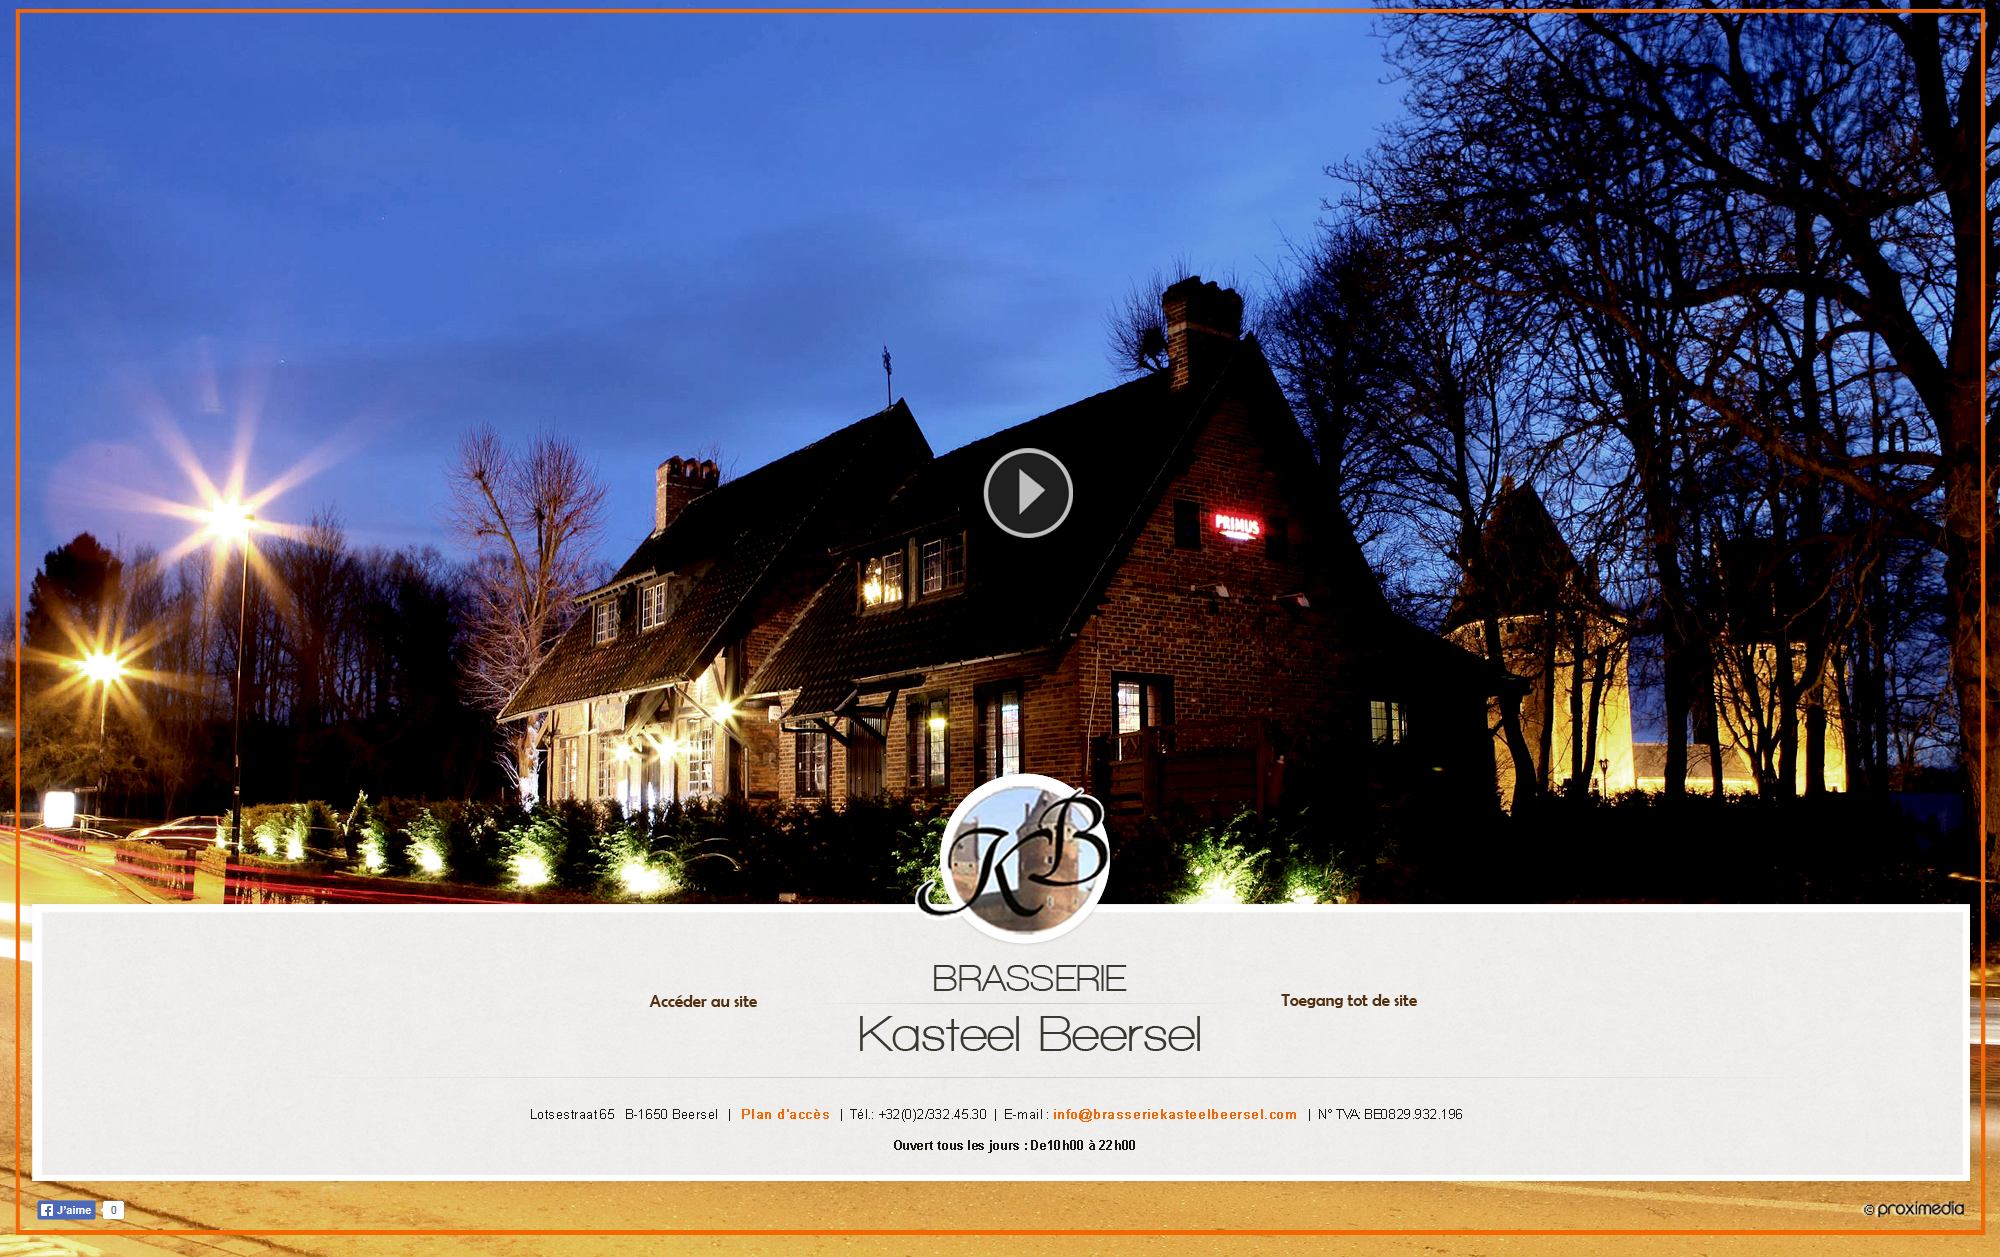 Brasserie Kasteel Beersel - Etape_01_intro-video